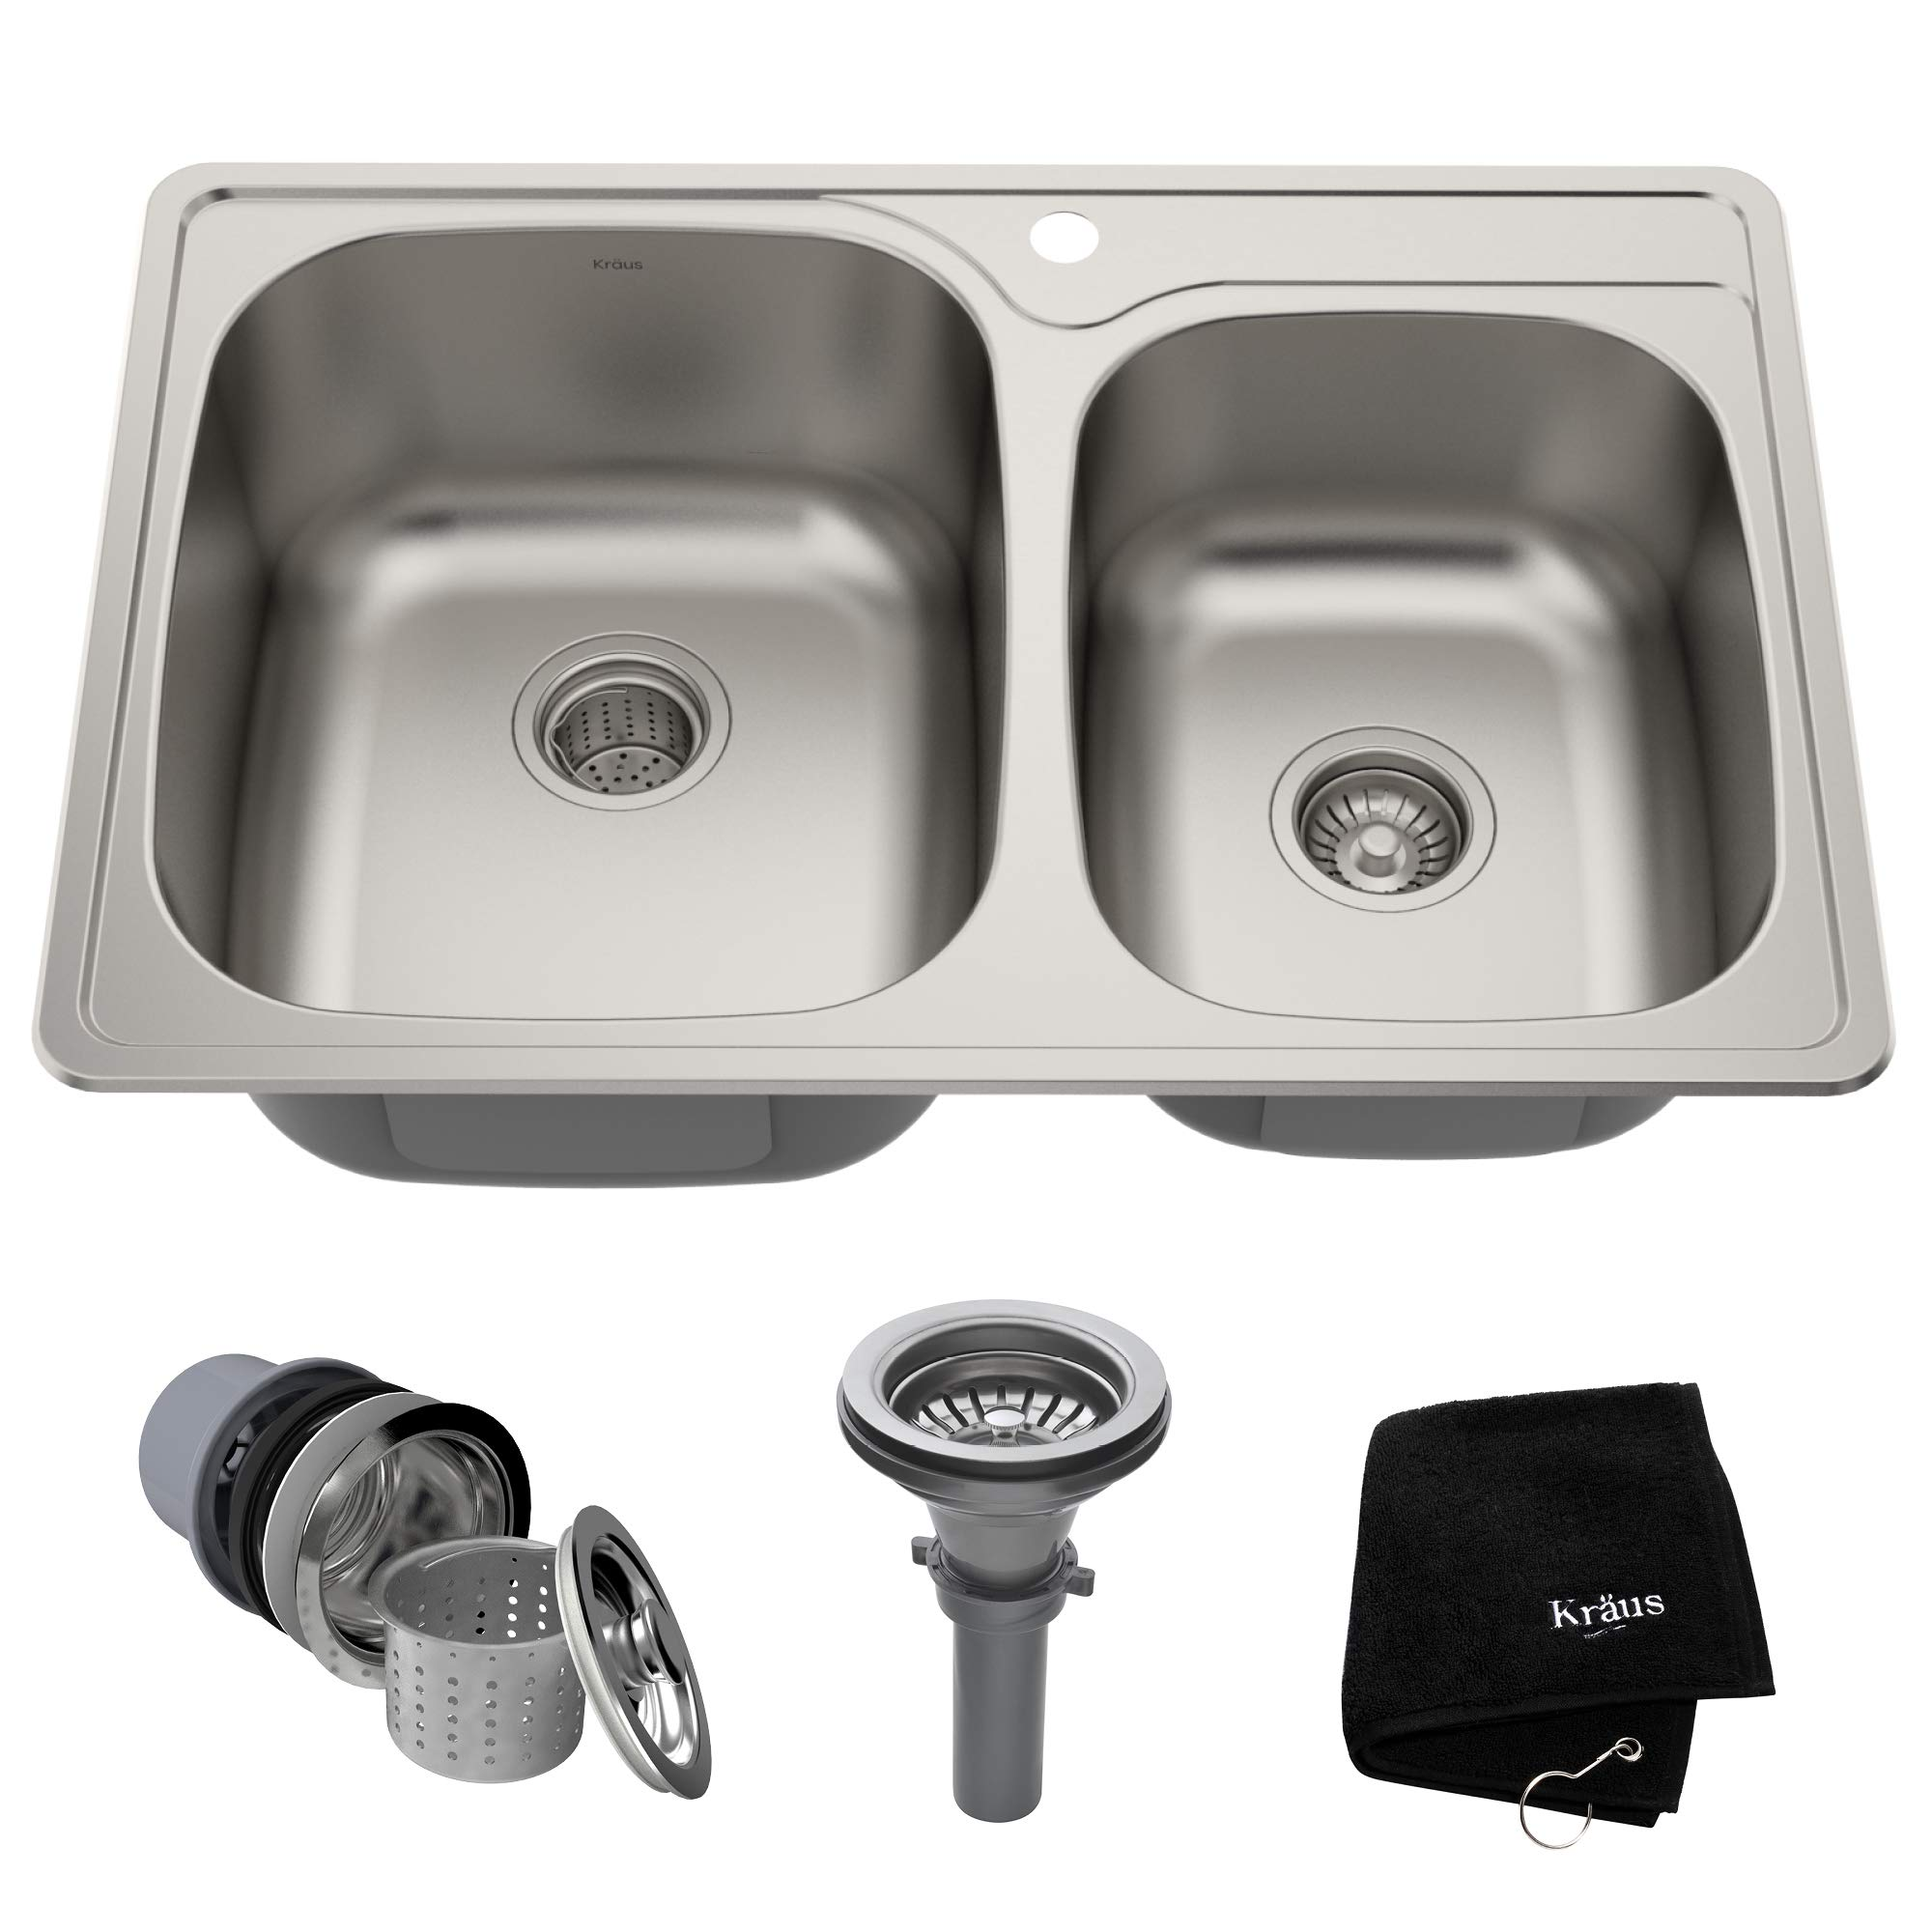 CDM product Kraus KTM32 33 inch Topmount 60/40 Double Bowl 18 Gauge Stainless Steel Kitchen Sink small thumbnail image